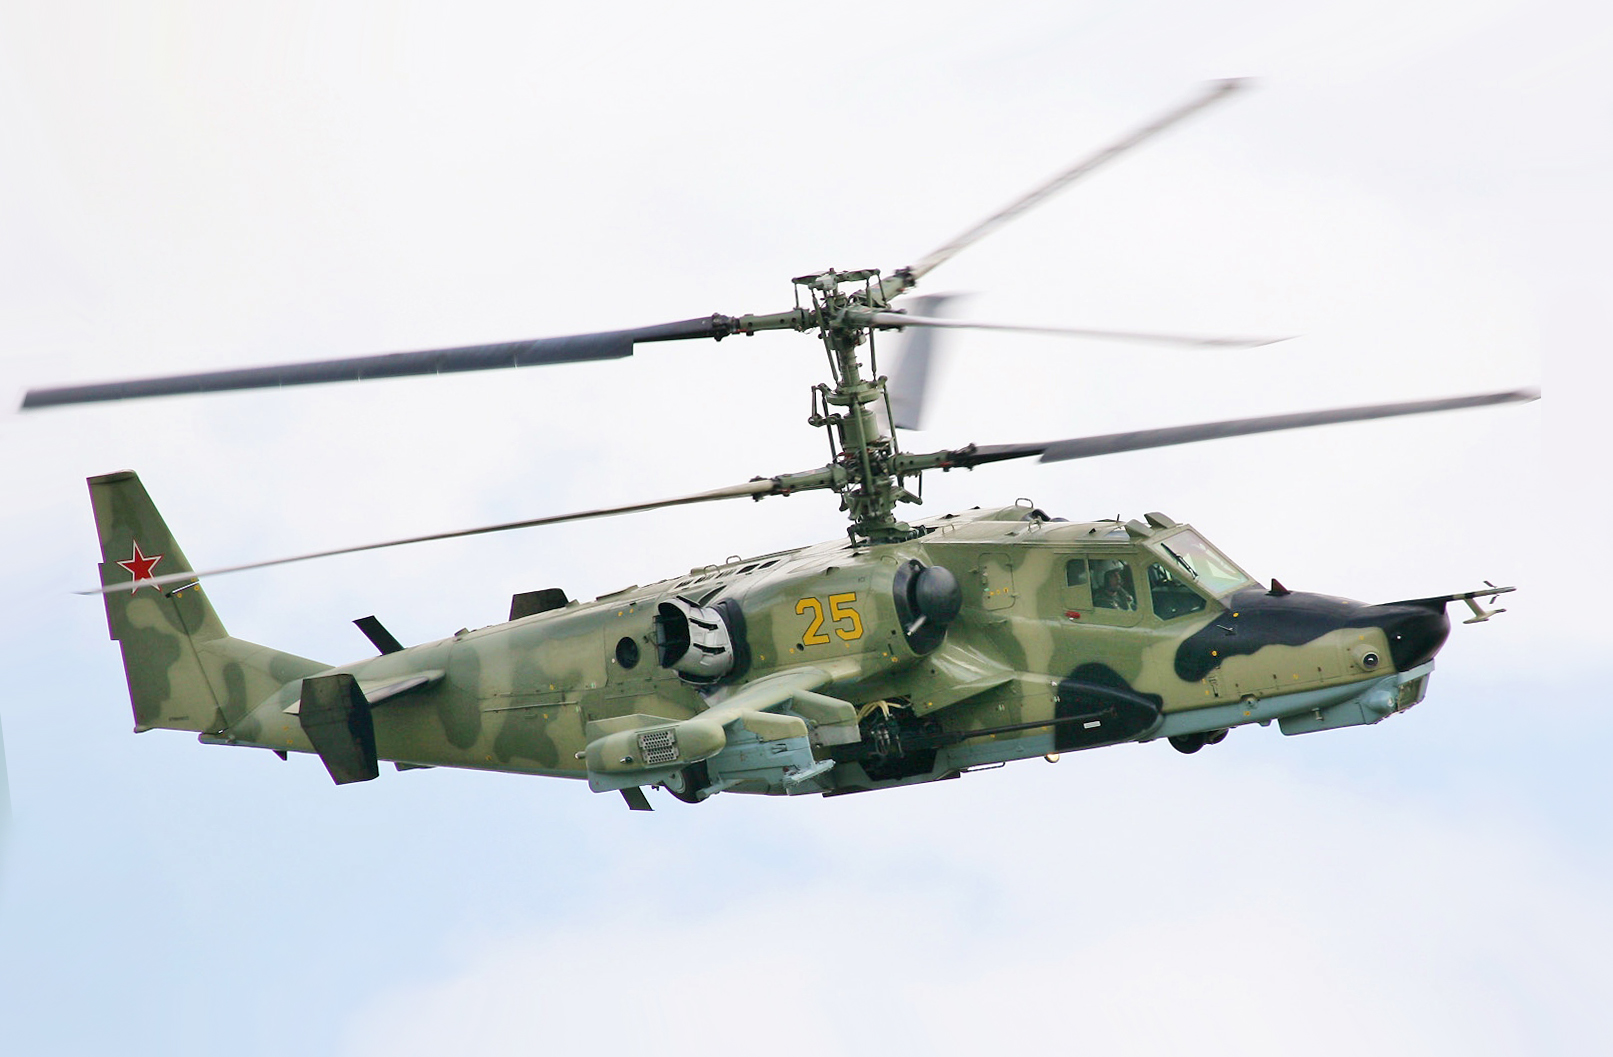 army rc helicopters with File Russian Air Force Kamov Ka 50 on Fws Armory Rotary Cannons And Mini Guns moreover Ah 1 Cobra Helicopter moreover Detail in addition Cat Helicopteros 72 further Types Of Military Drones.